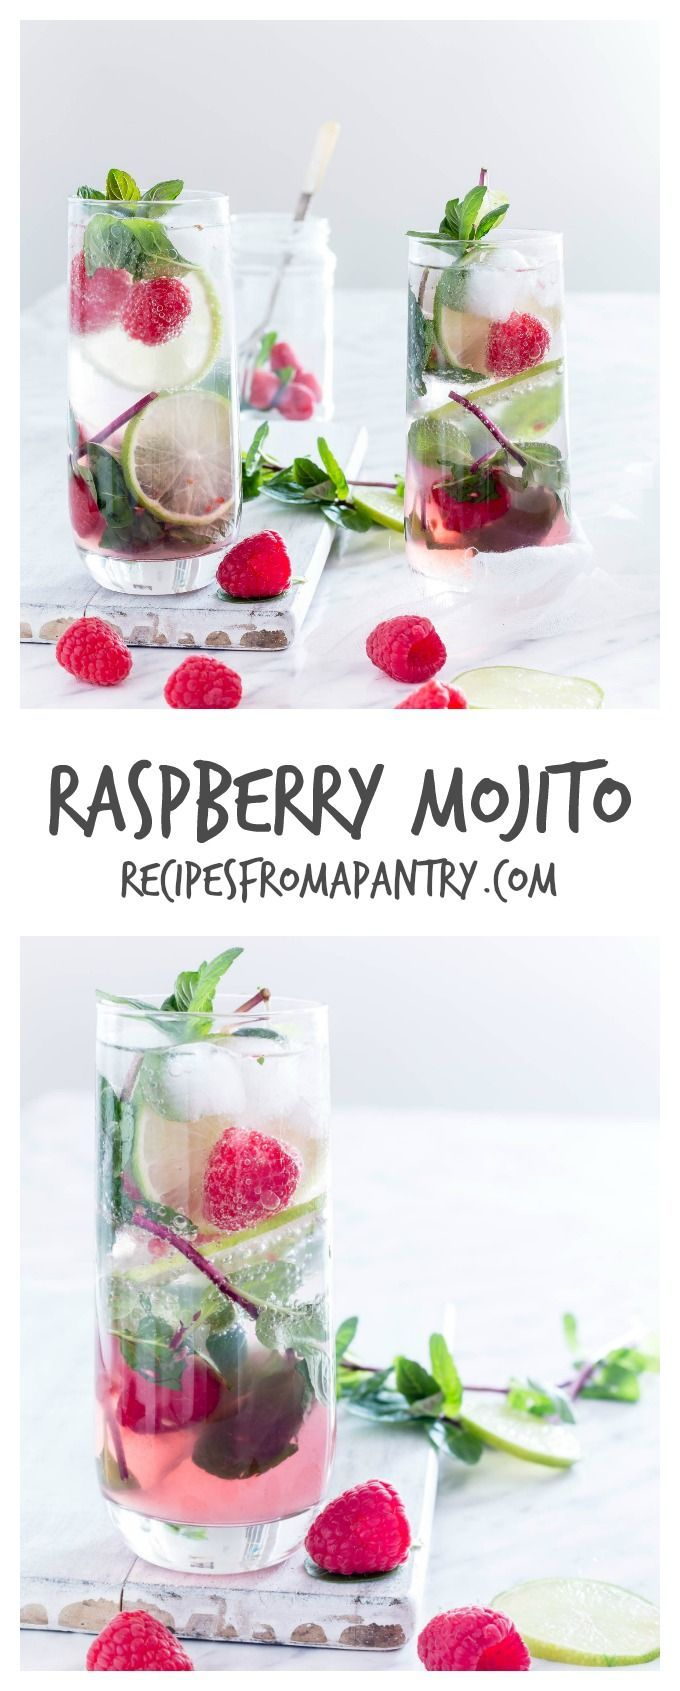 Rasbberry Mojito - Refreshing & simple raspberry mojito recipe made with 5 ingredients - fresh raspberries, mint, lime, white rum and soda water. | recipesfromapantr....